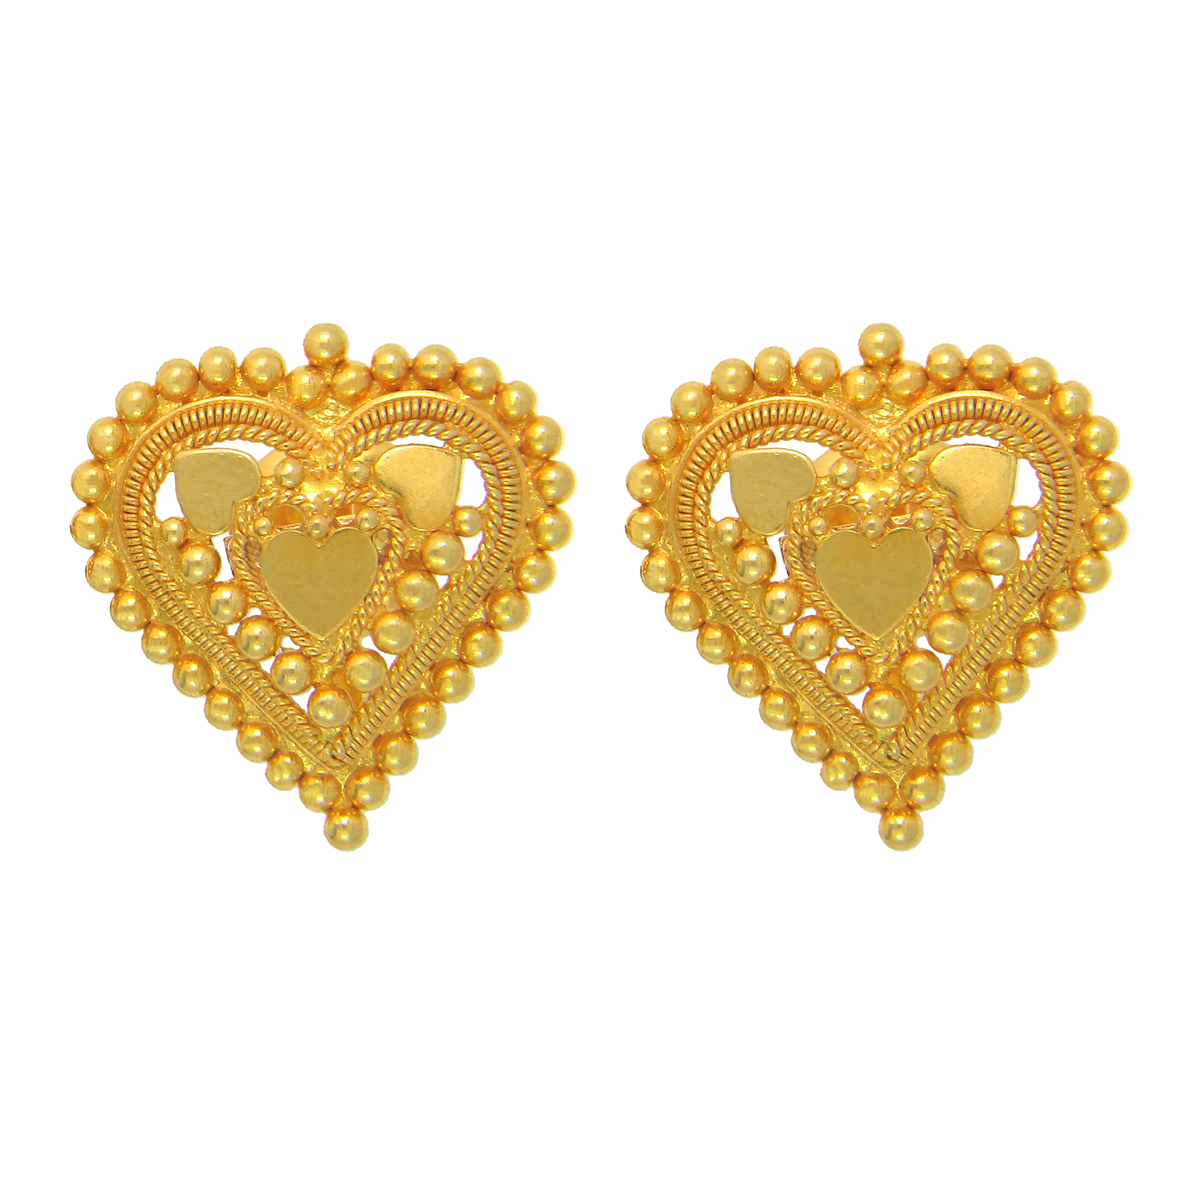 Popley 22Kt Gold Bandhan Earring - A43